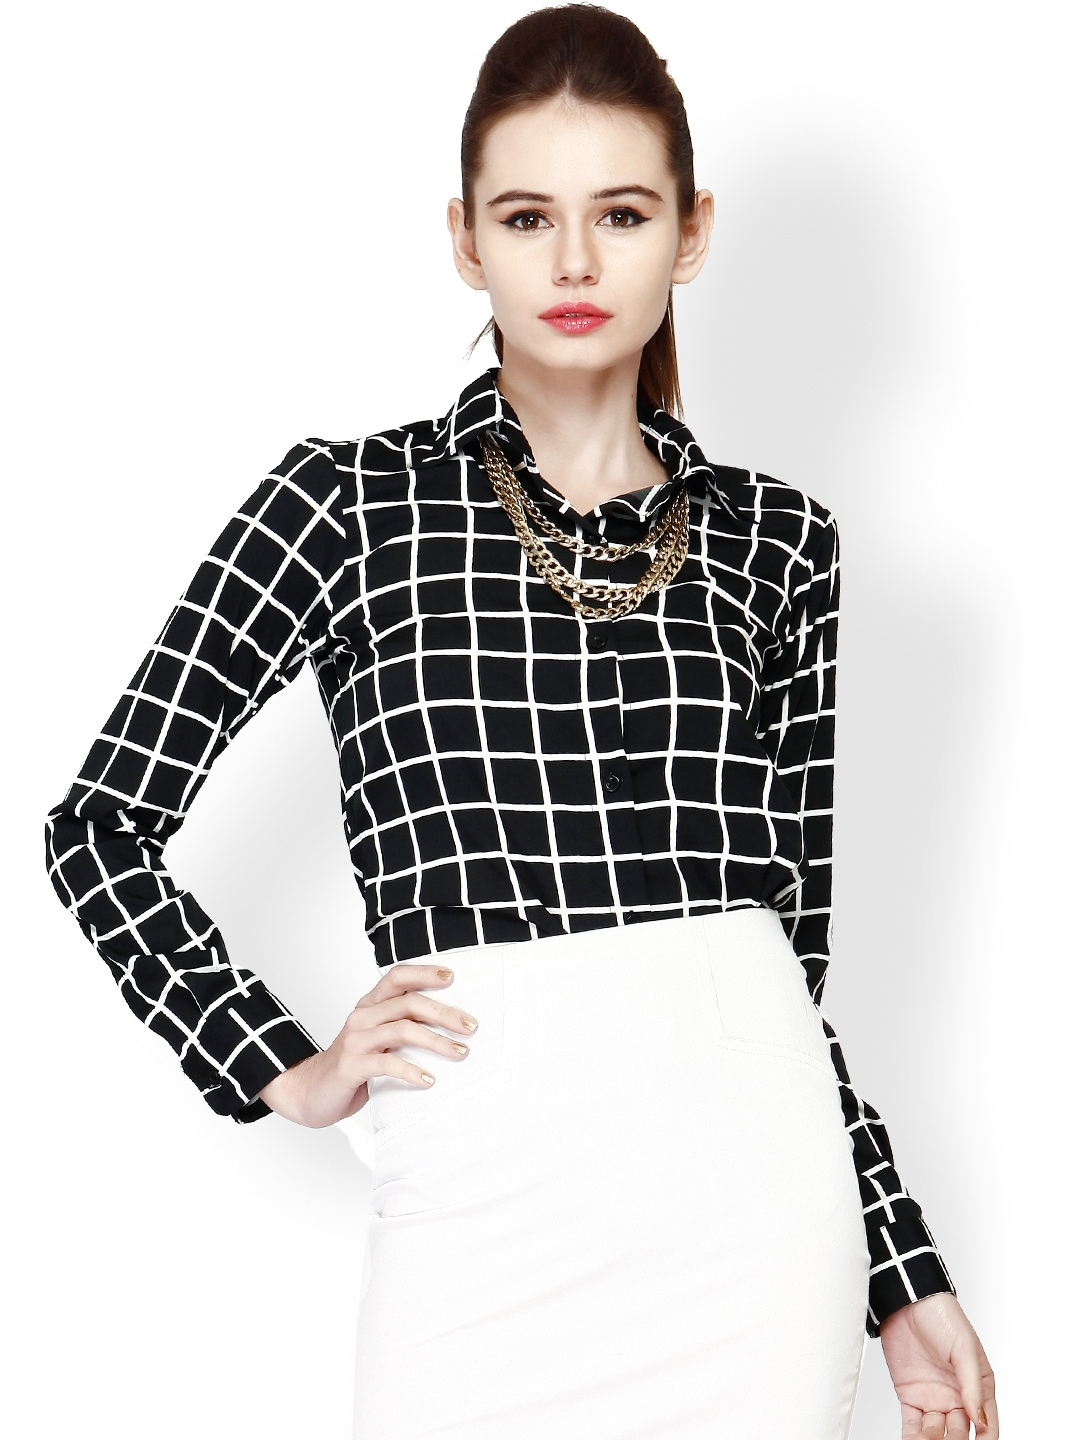 Buy White Women Shirts online in India. Huge range of White Shirts for Women at getdangero.ga Free Shipping* 15 days Return Cash on Delivery. Toggle navigation. Jabong. SHOP YOUR PROFILE. women. W White & Black Printed Casual Shirt. (%) Sizes 18 16 14 12 10 8 6. Add To Wishlist.